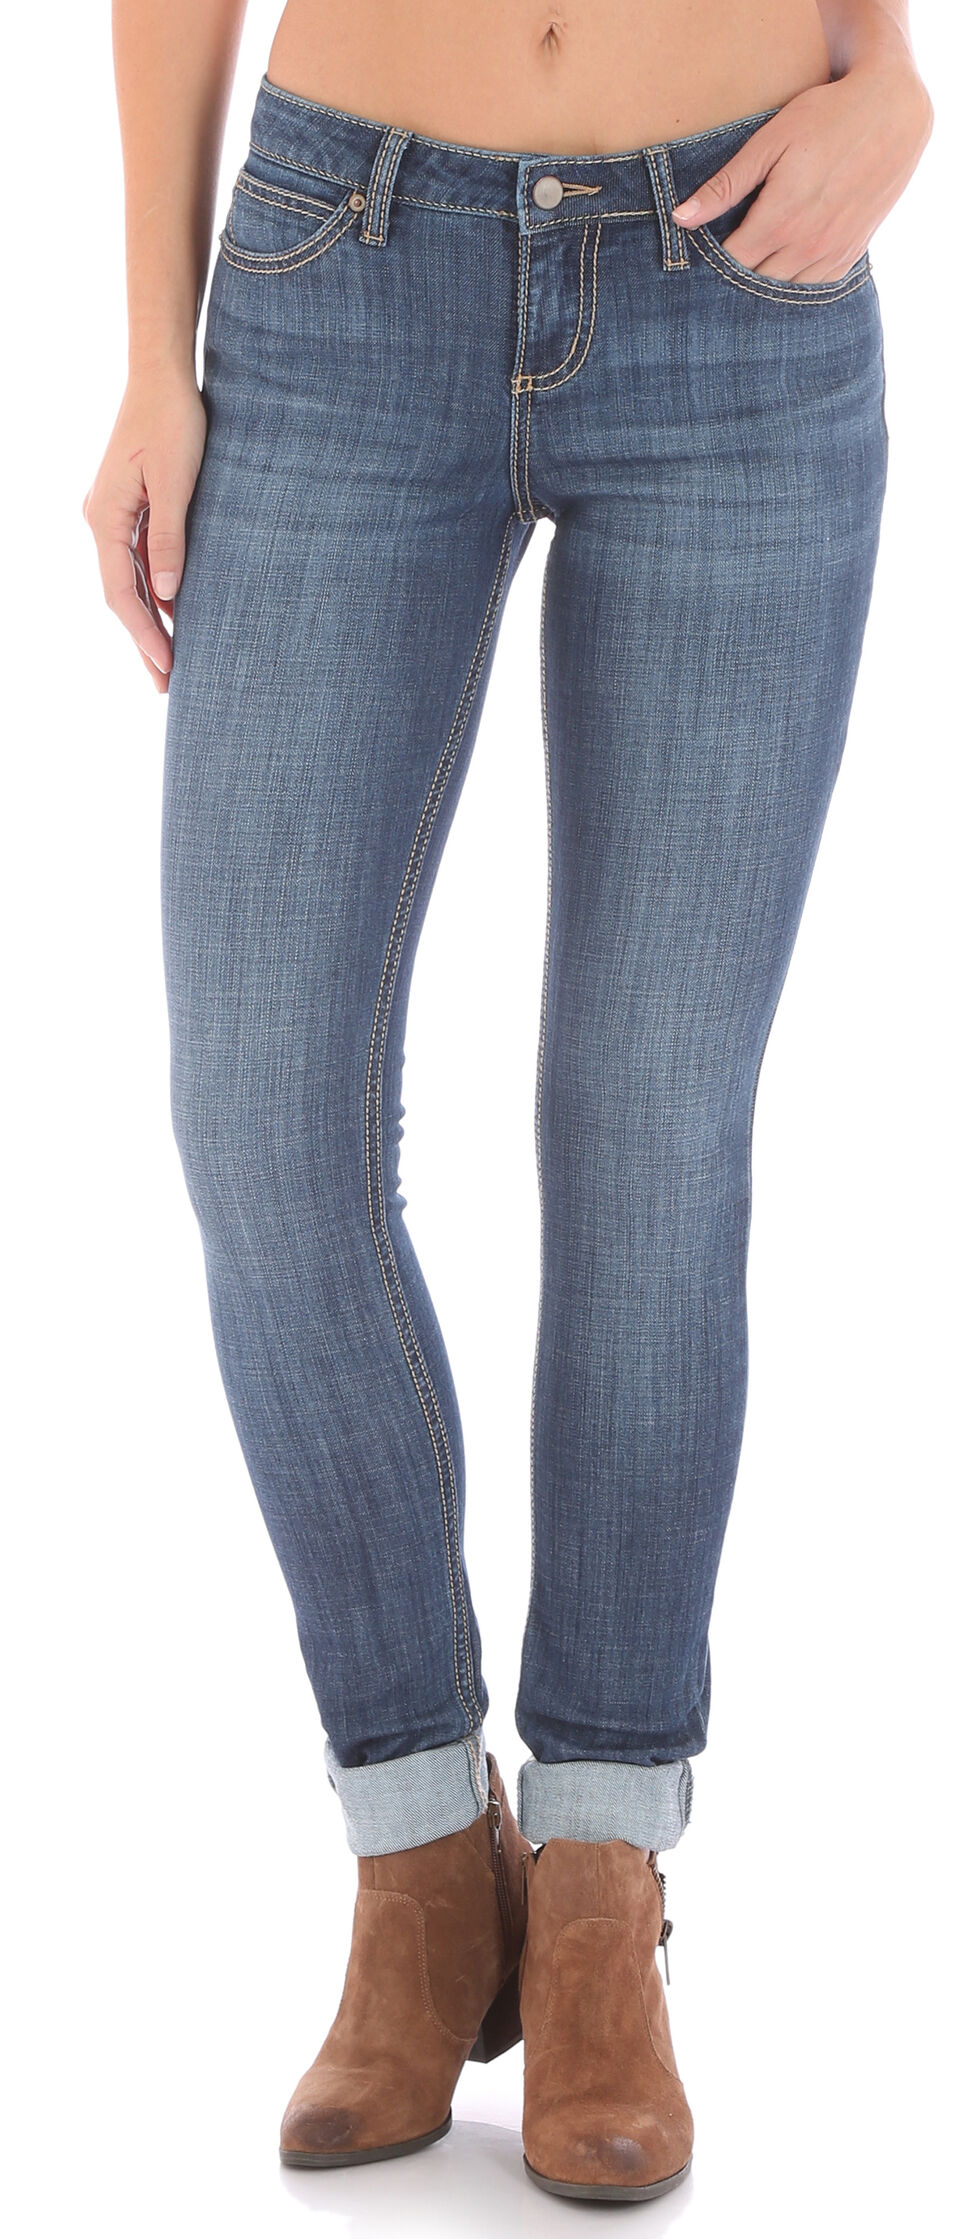 Wrangler Women's Medium Wash Retro Mae Skinny Jeans, Indigo, hi-res